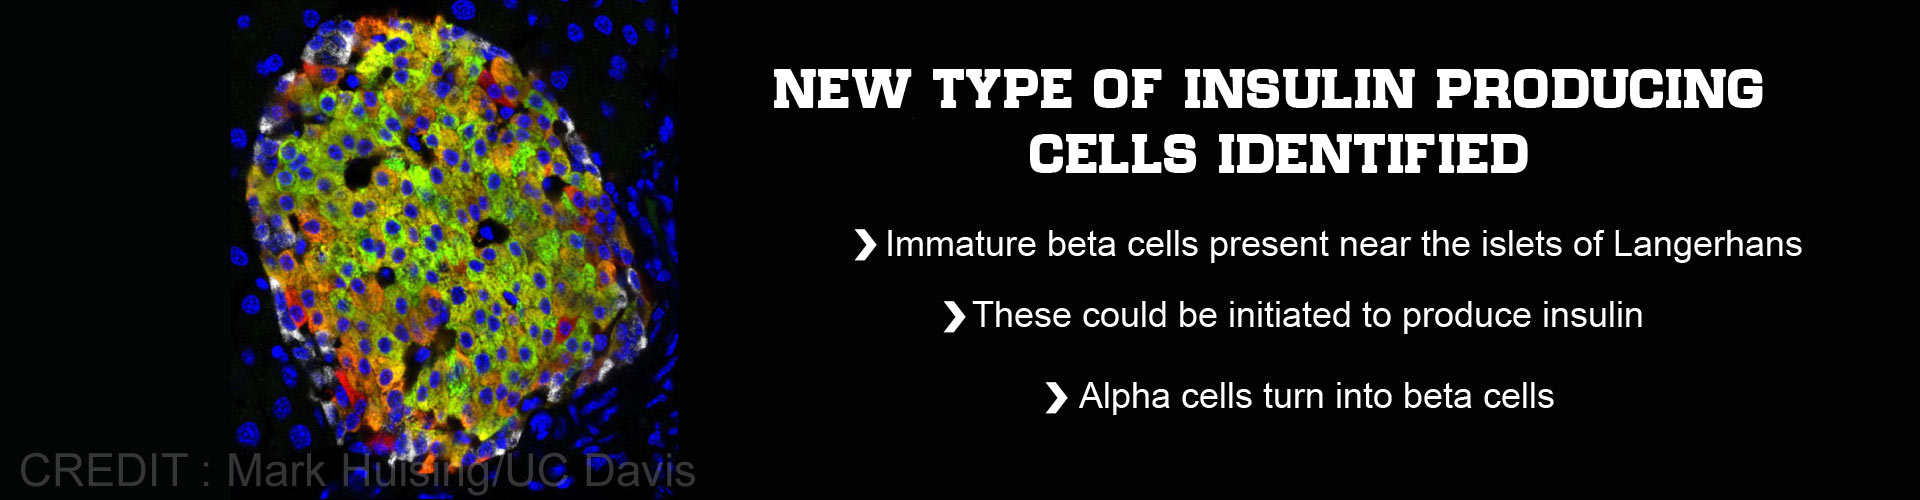 A Brand New Type of Insulin Producing Cells Identified